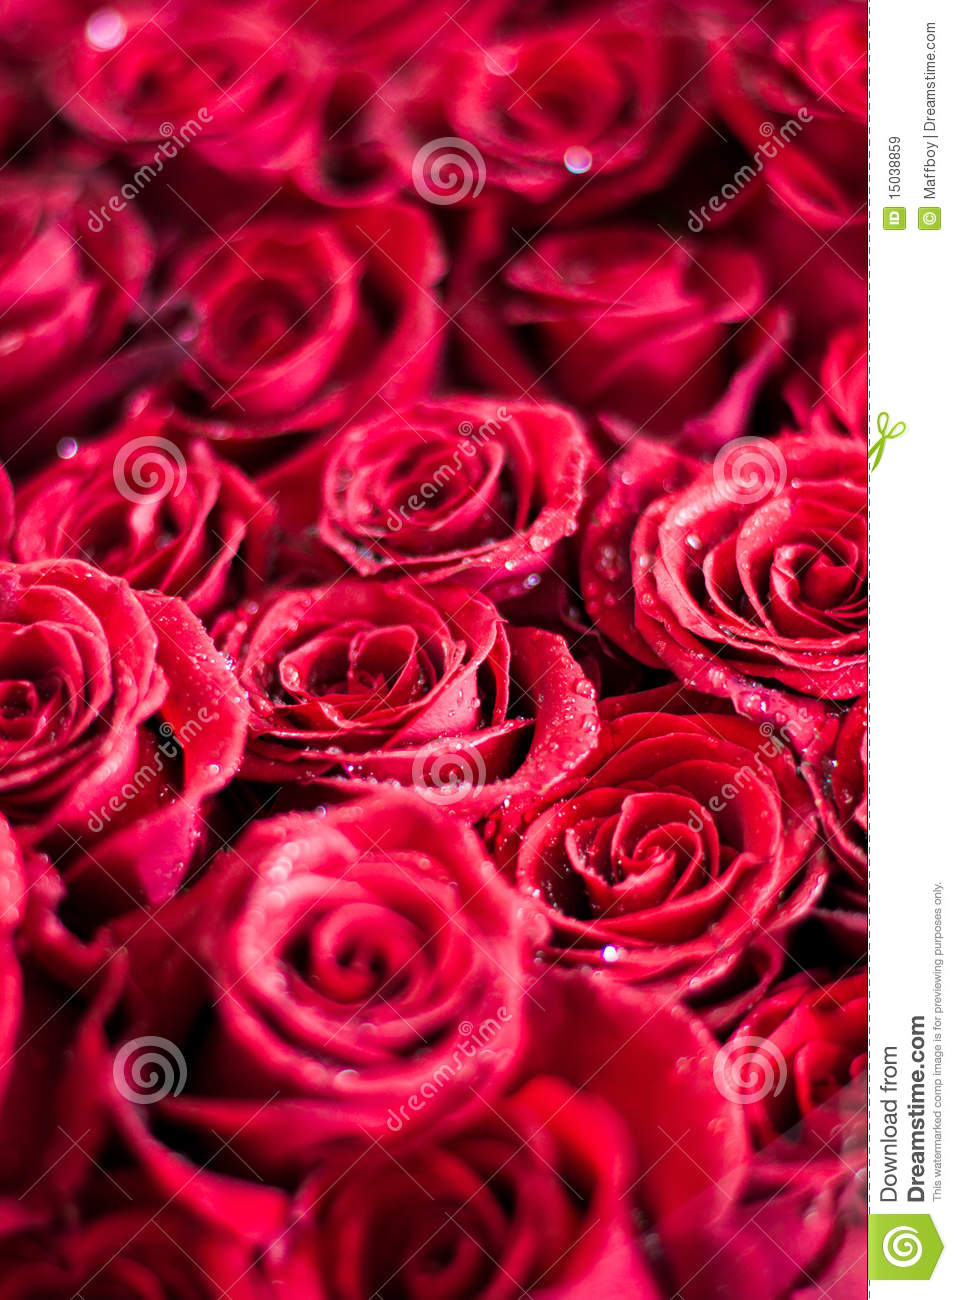 Bouquet of roses stock image image of garden natural 15038859 bouquet of roses izmirmasajfo Gallery